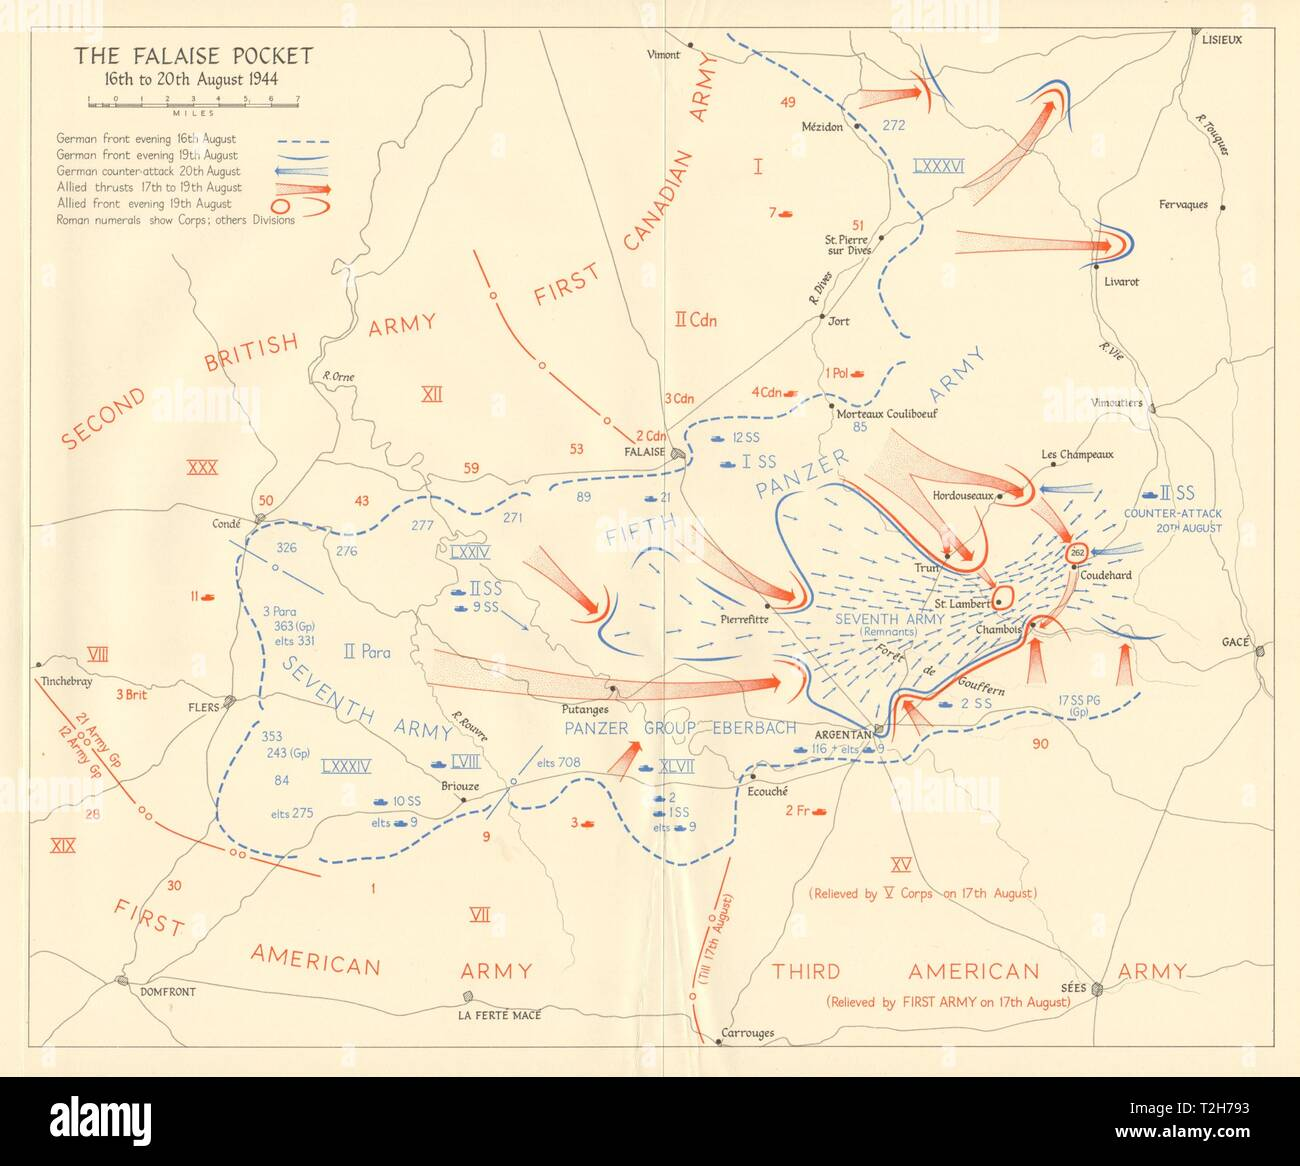 Battle of Falaise Pocket 16-20 August 1944 Operation Overlord Normandy 1962 map Stock Photo